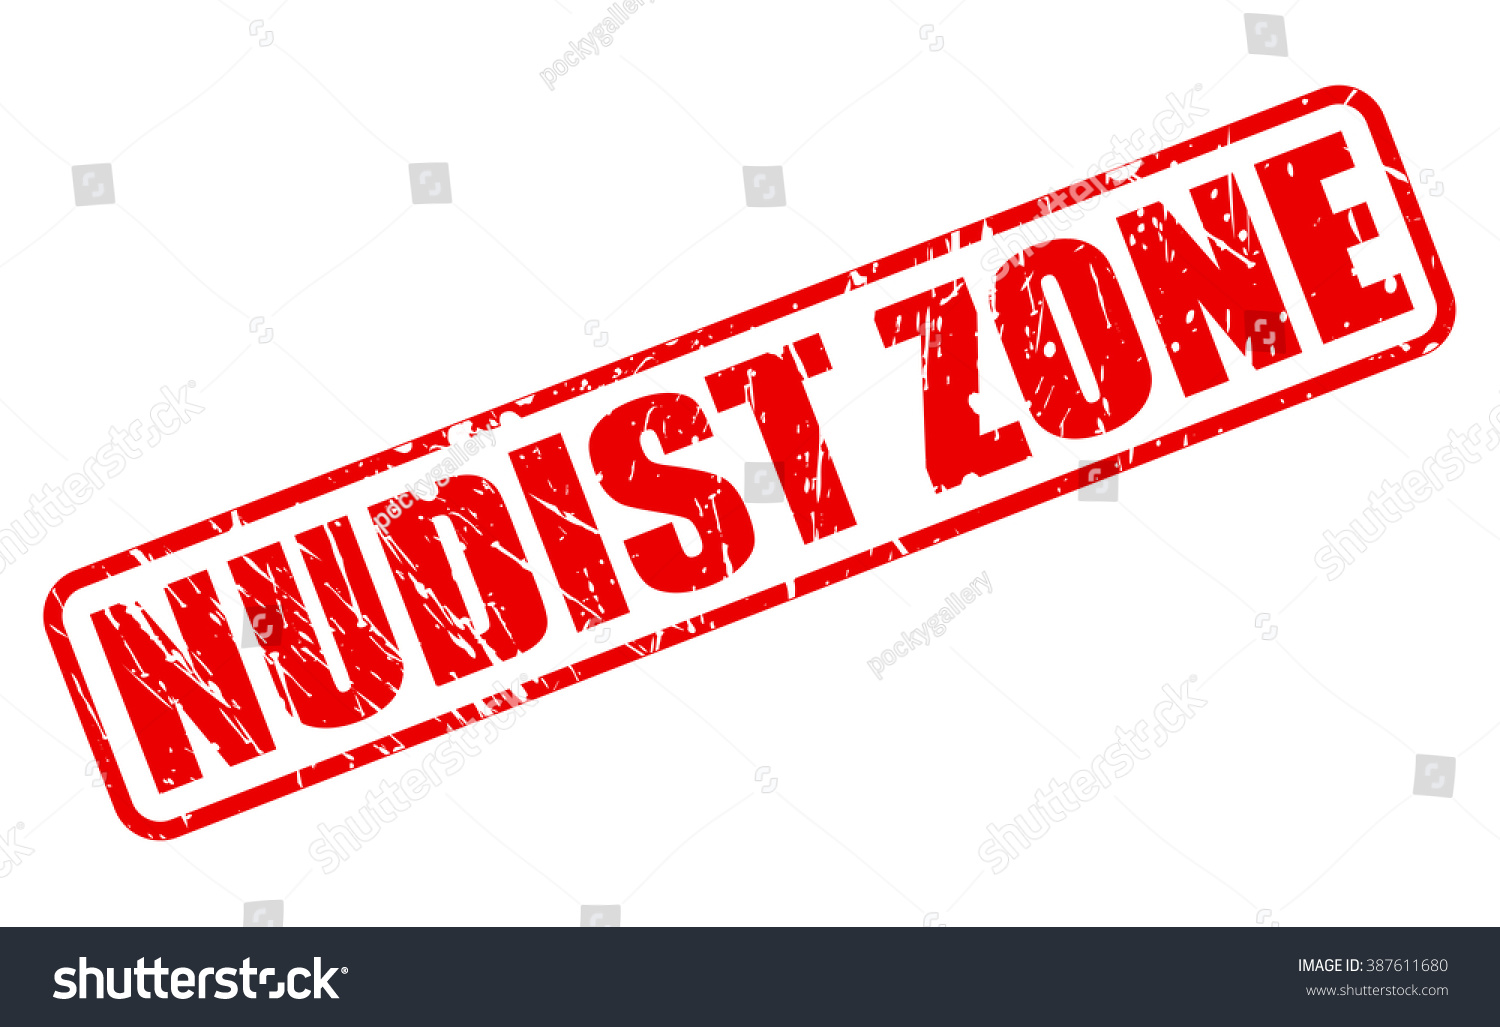 Nudist Zone NUDIST ZONE RED STAMP TEXT ON WHITE